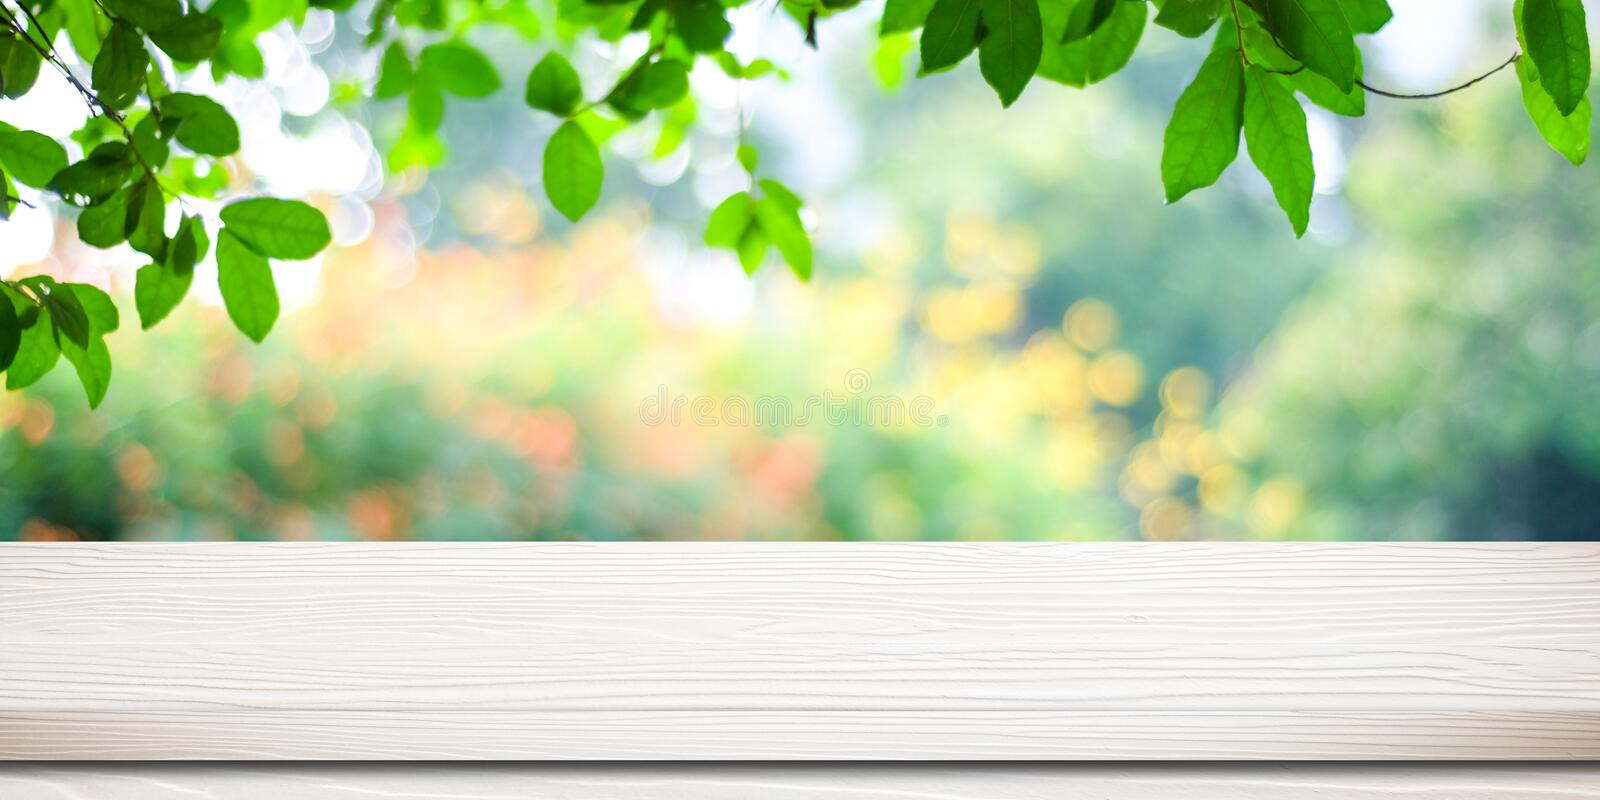 Empty white vintage wooden table over blurred park nature background, banner for product display montage, spring and summer royalty free stock photo